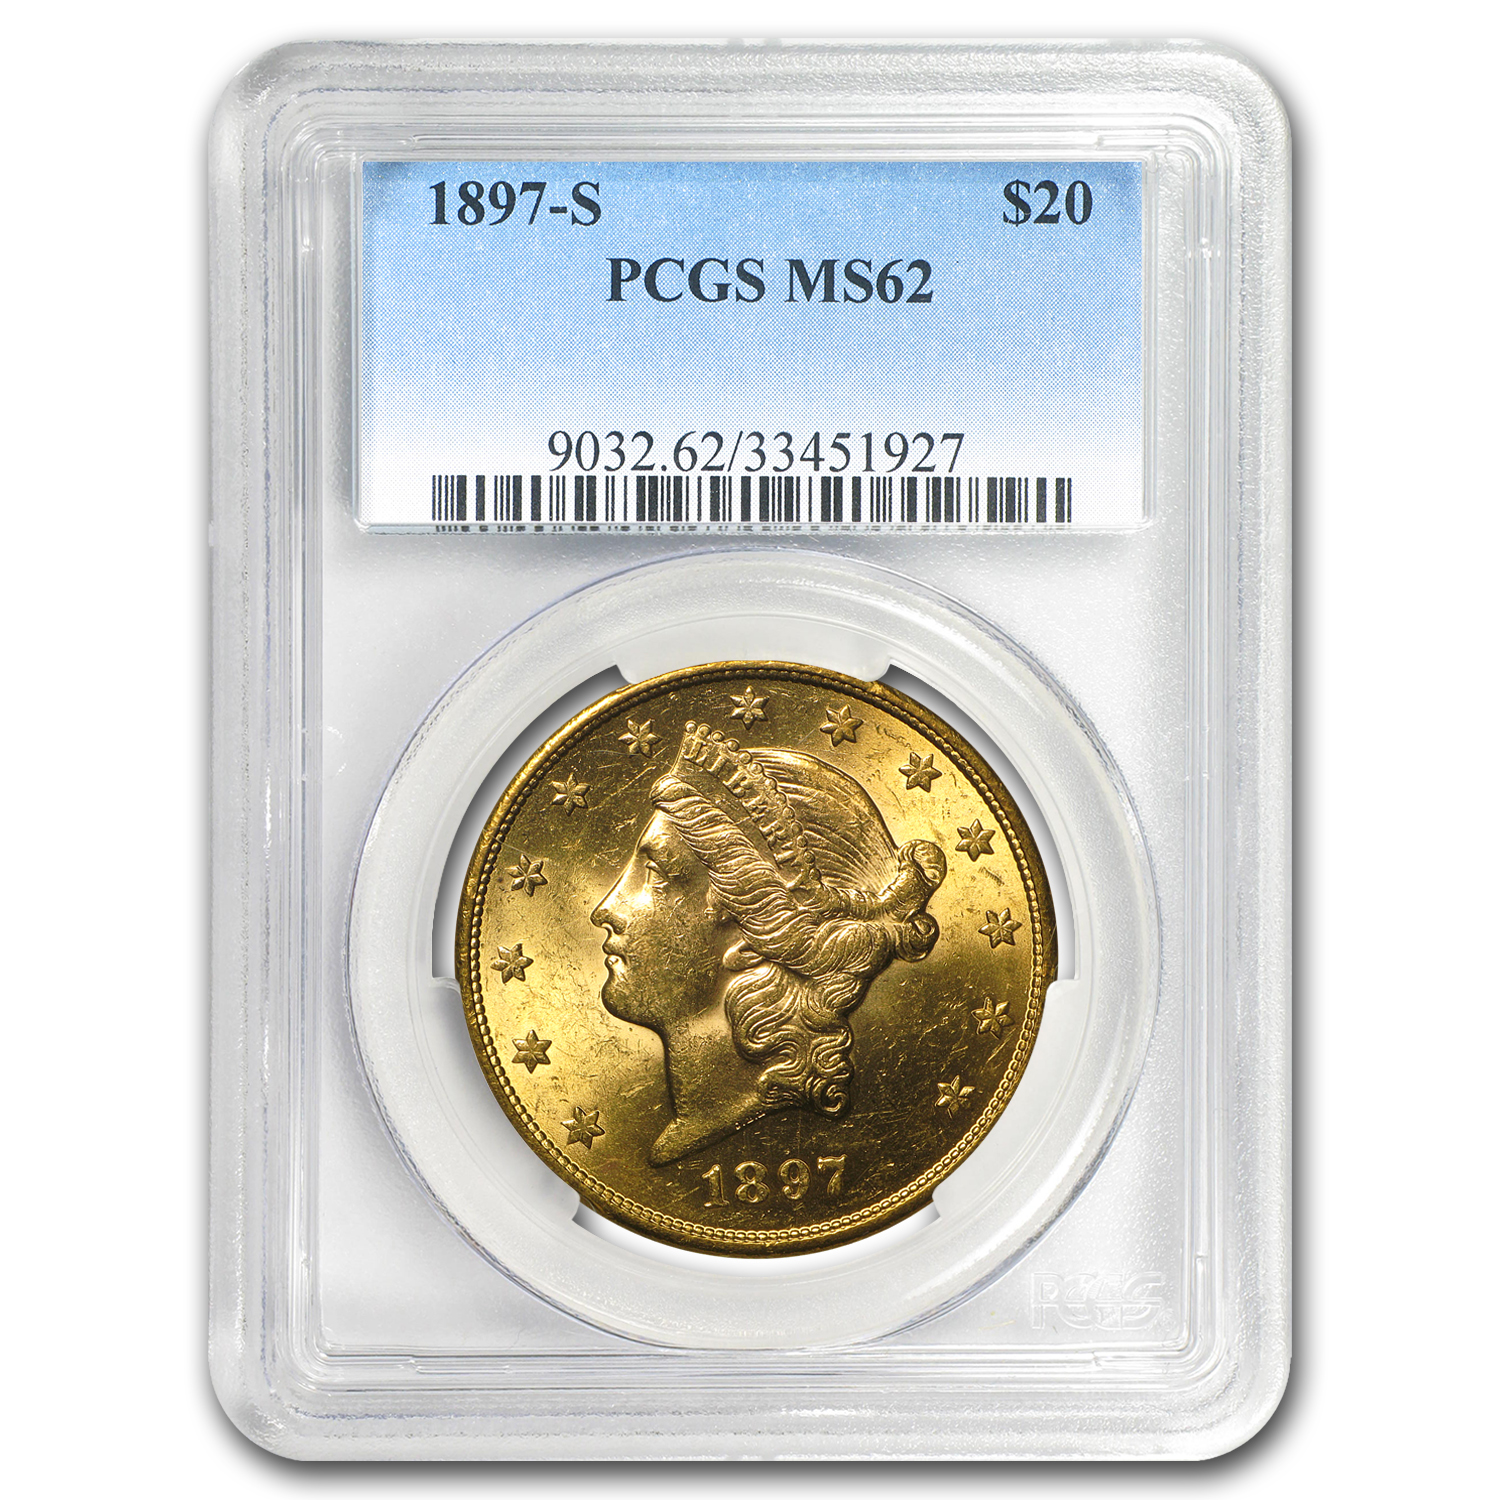 5-Coin $20 Liberty Gold Dble Eagle Set MS-62 PCGS (1800s S-Mint)